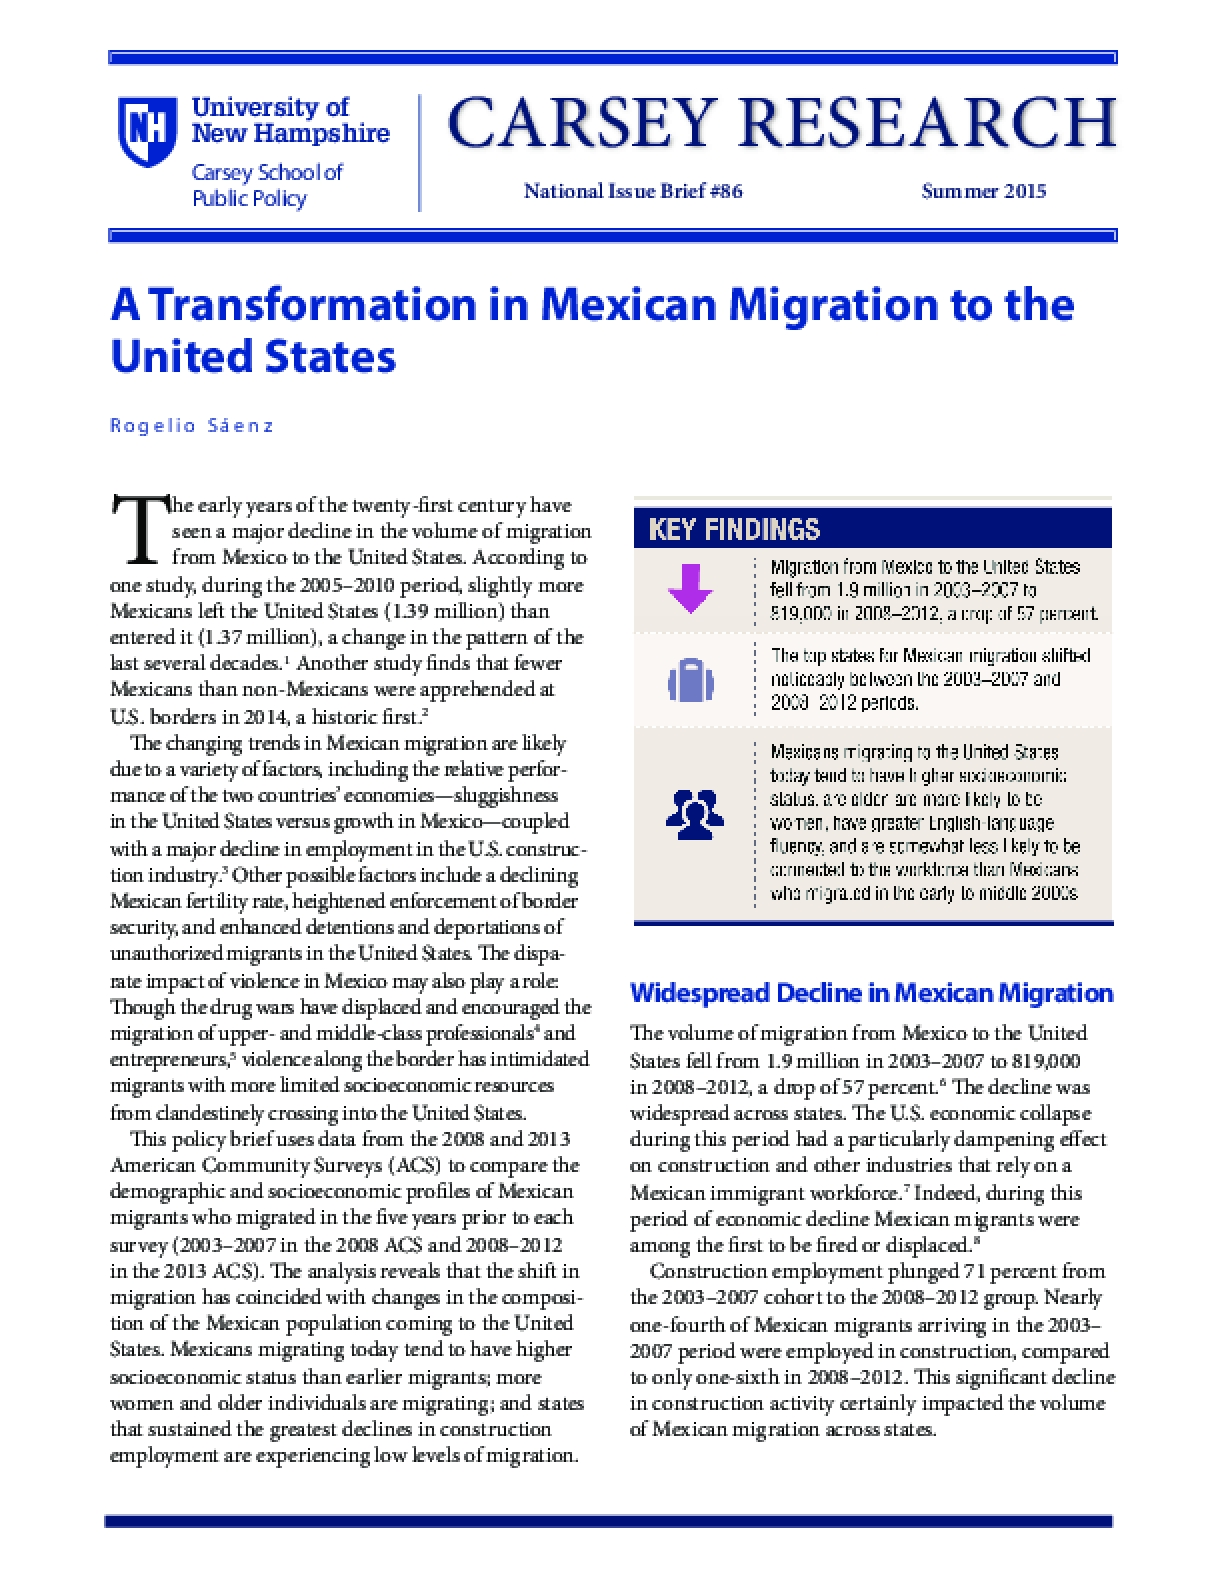 A Transformation in Mexican Migration to the United States